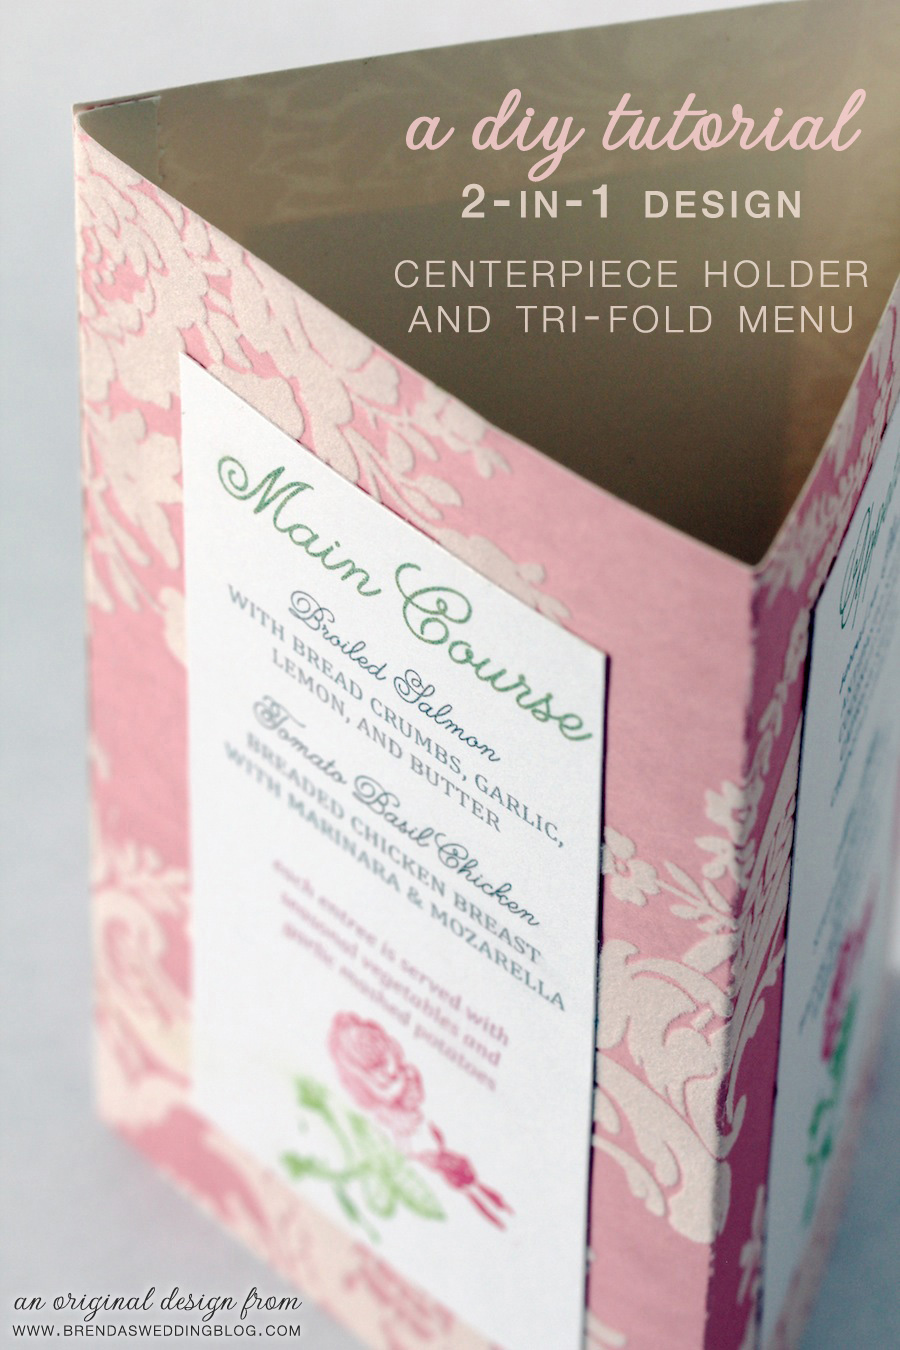 A Wedding DIY Tutorial : Tri-Fold Menu and Centerpiece Holder In One | original design by www.brendasweddingblog.com